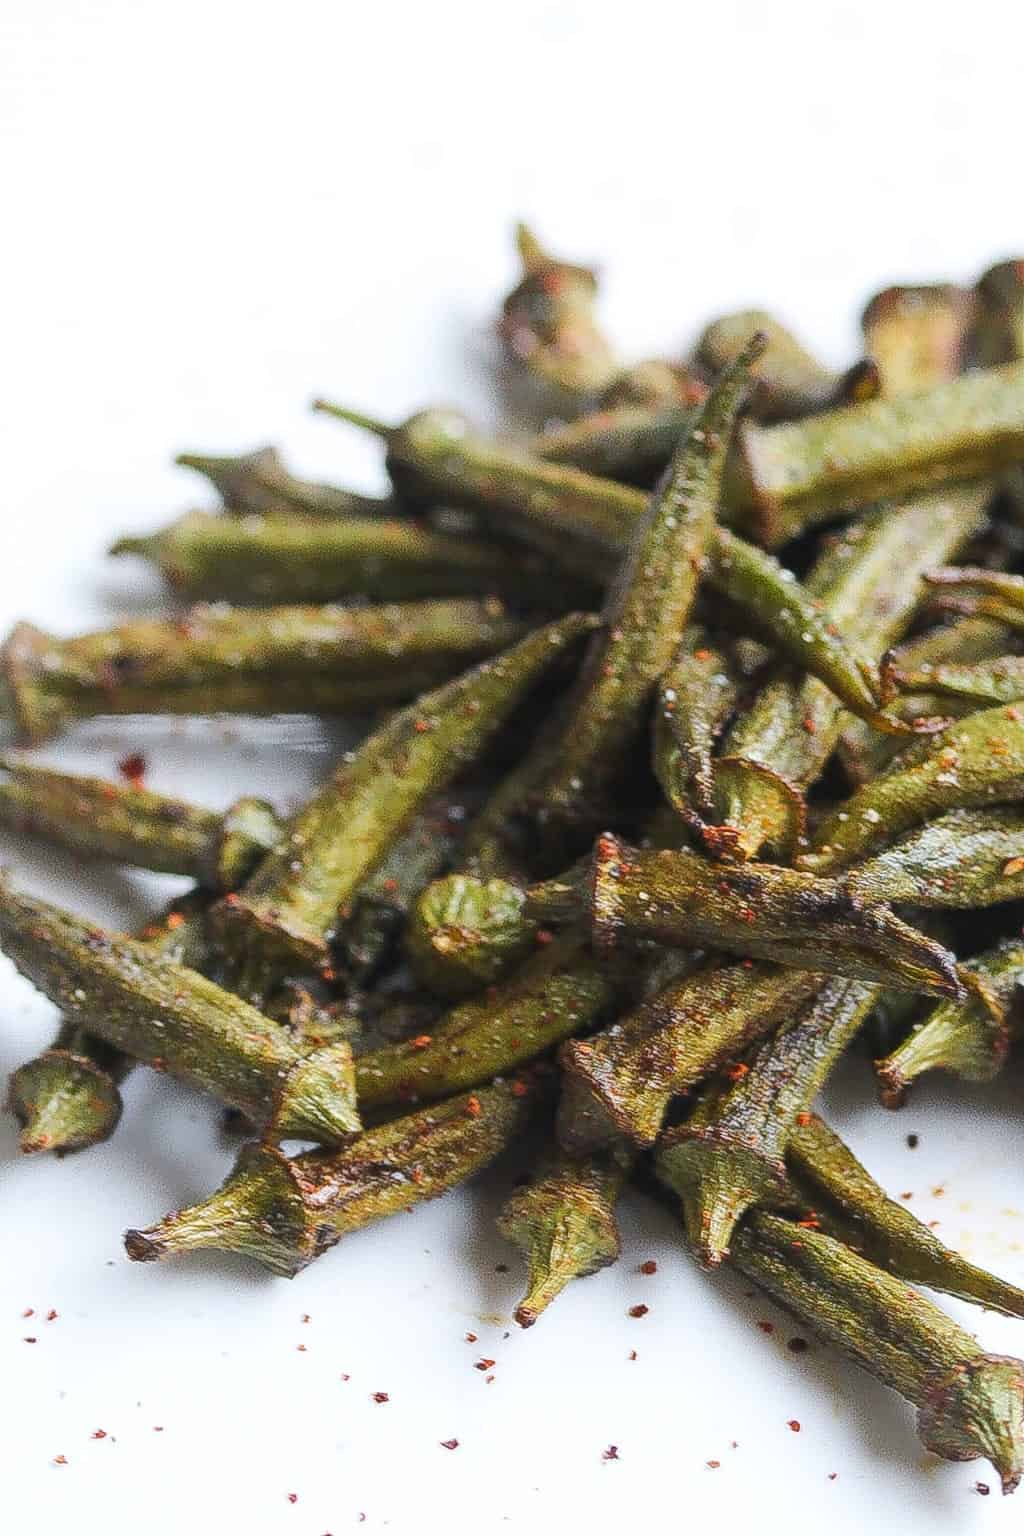 roasted okra pods on a white plate